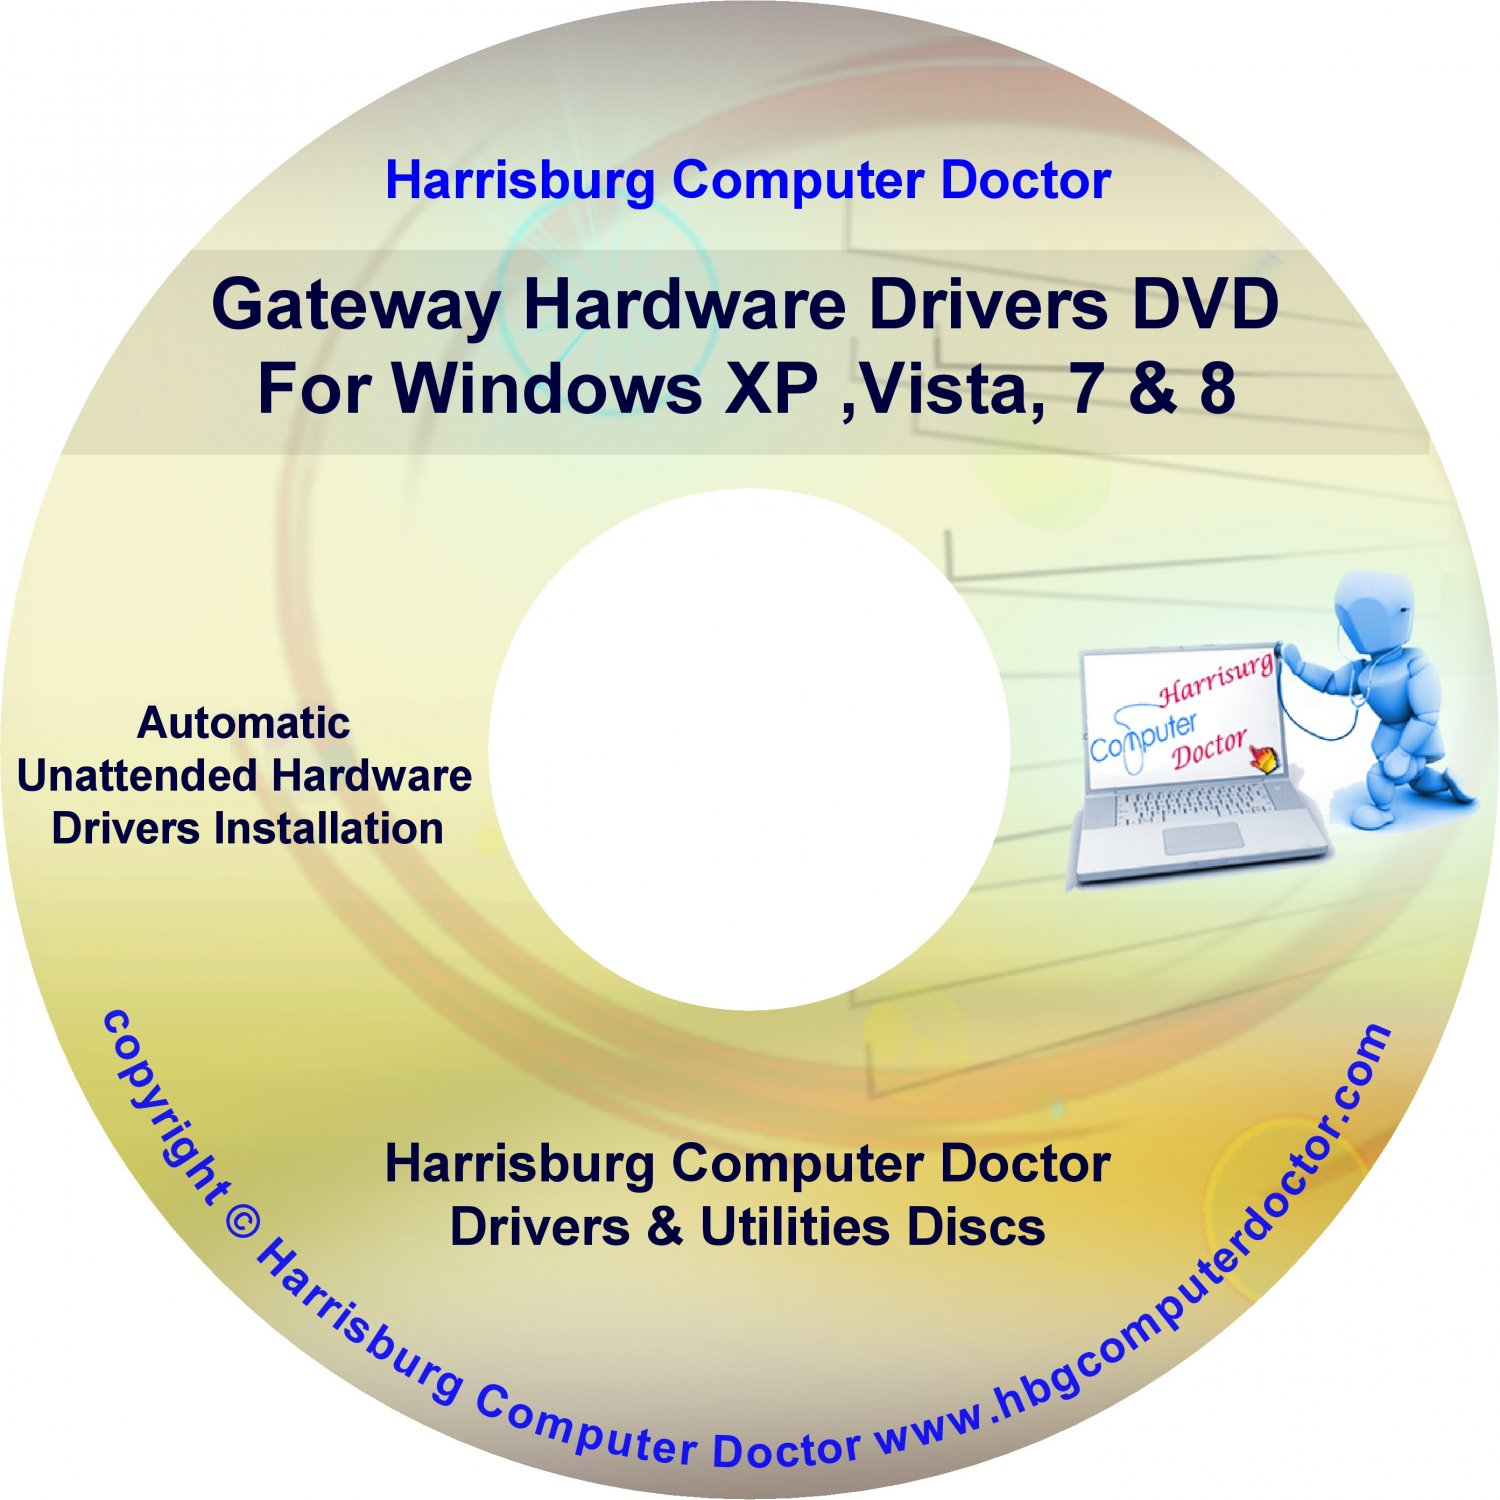 Gateway 3040GZ Drivers DVD For Windows, XP, Vista, 7 & 8